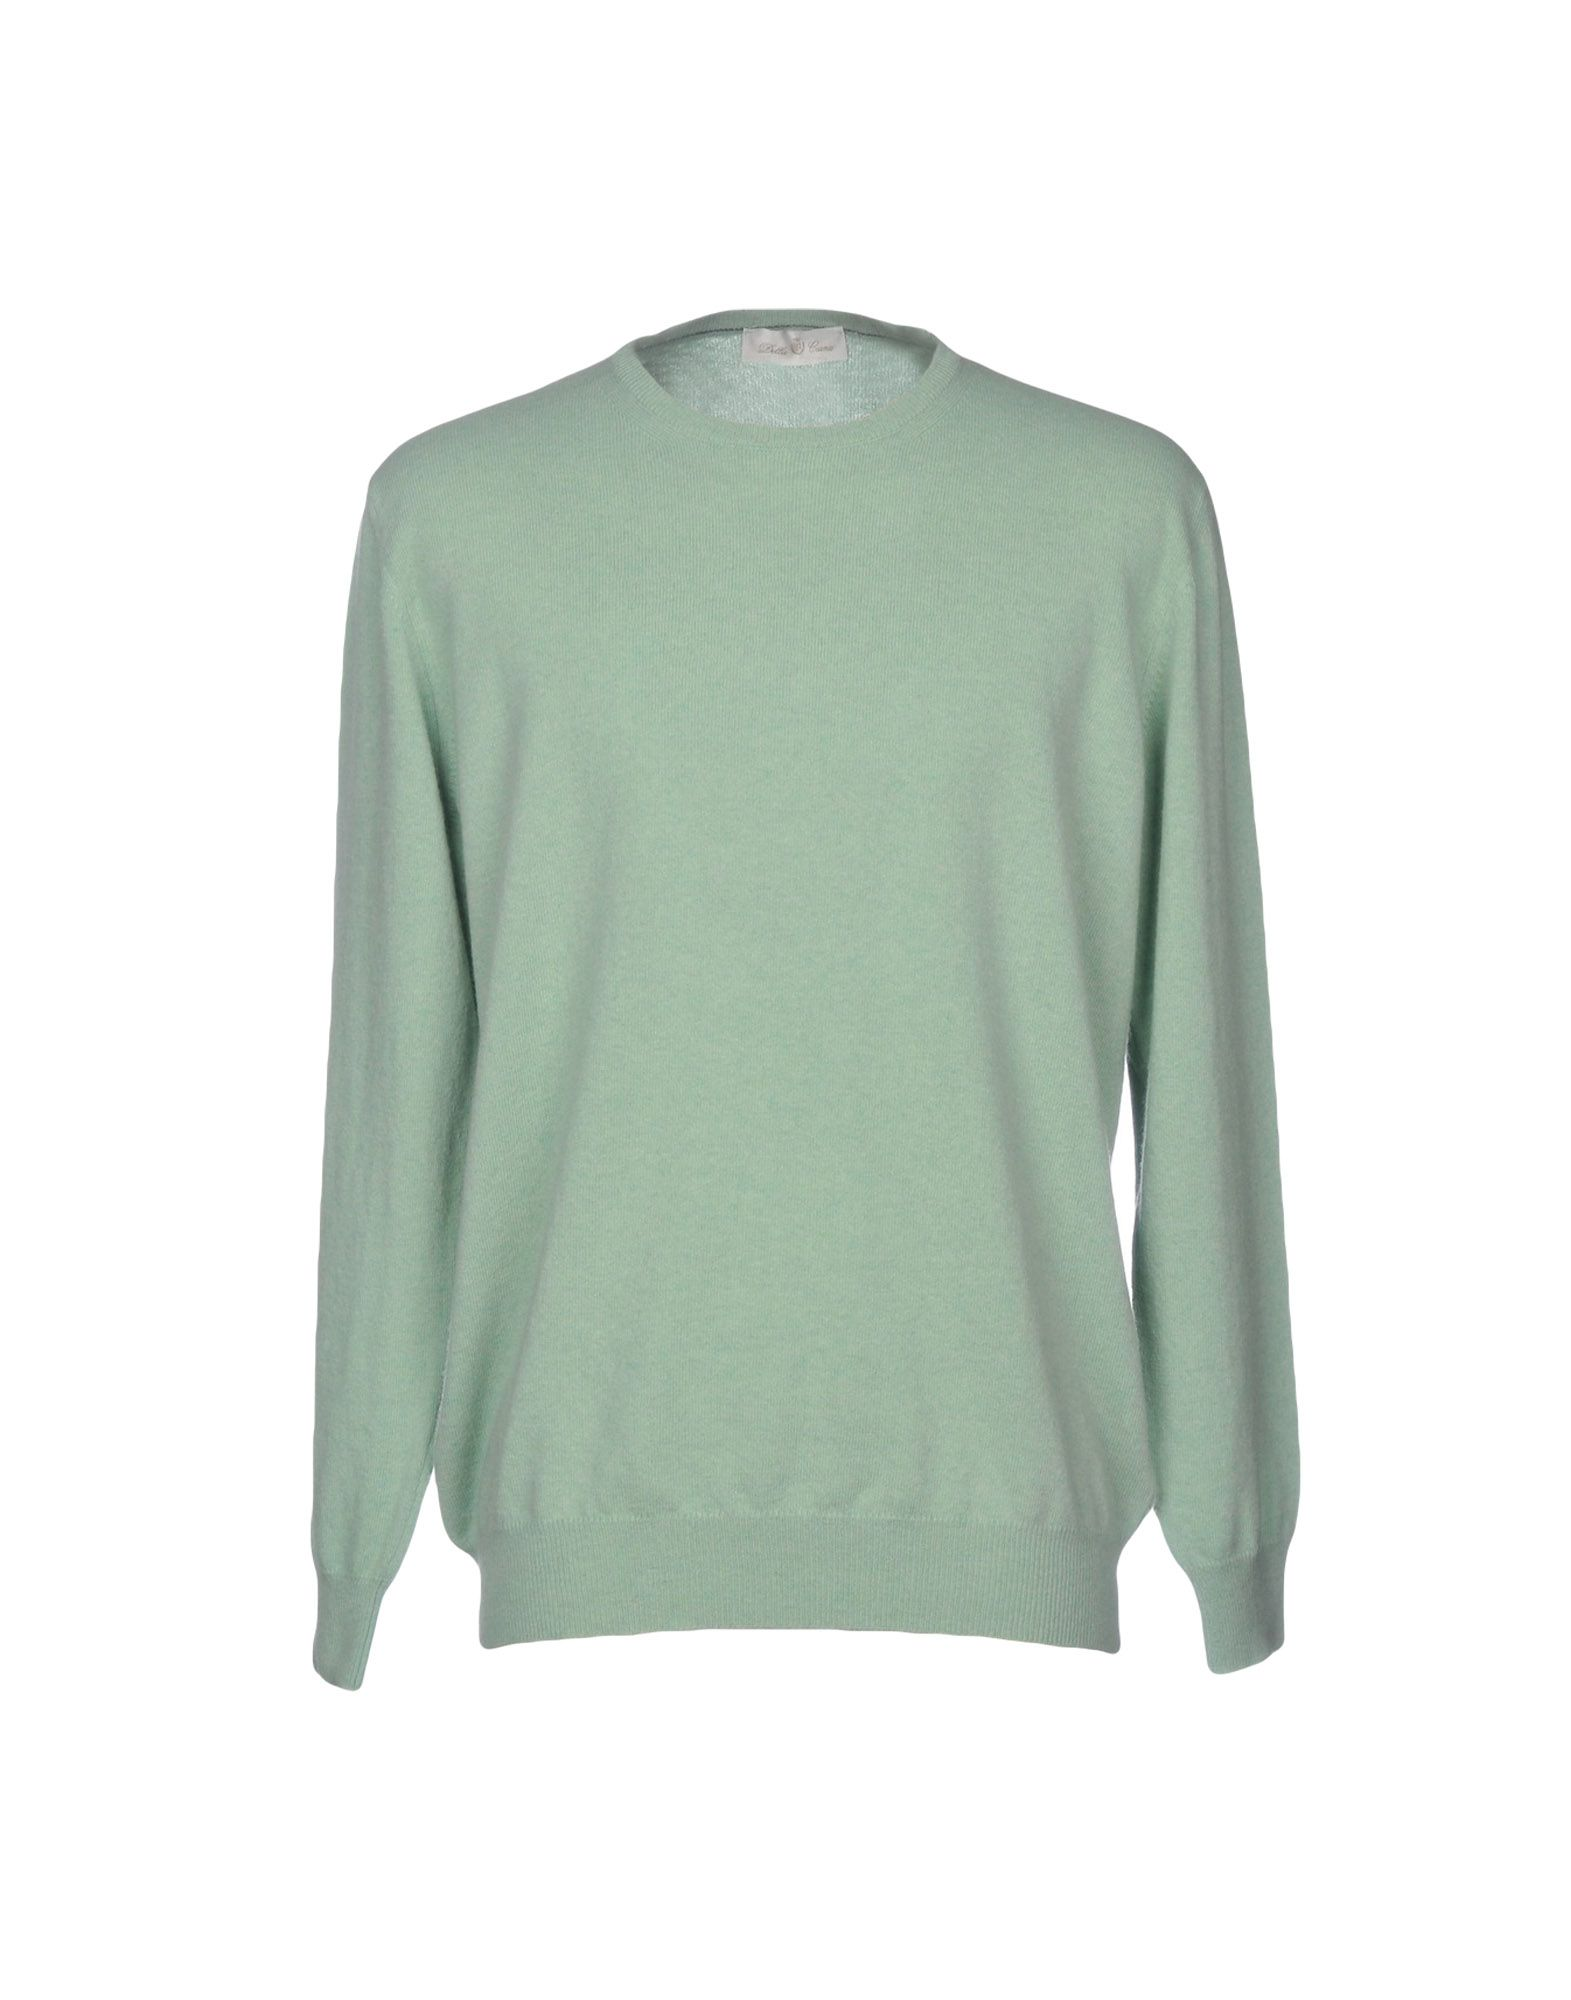 DELLA CIANA Sweater in Light Green